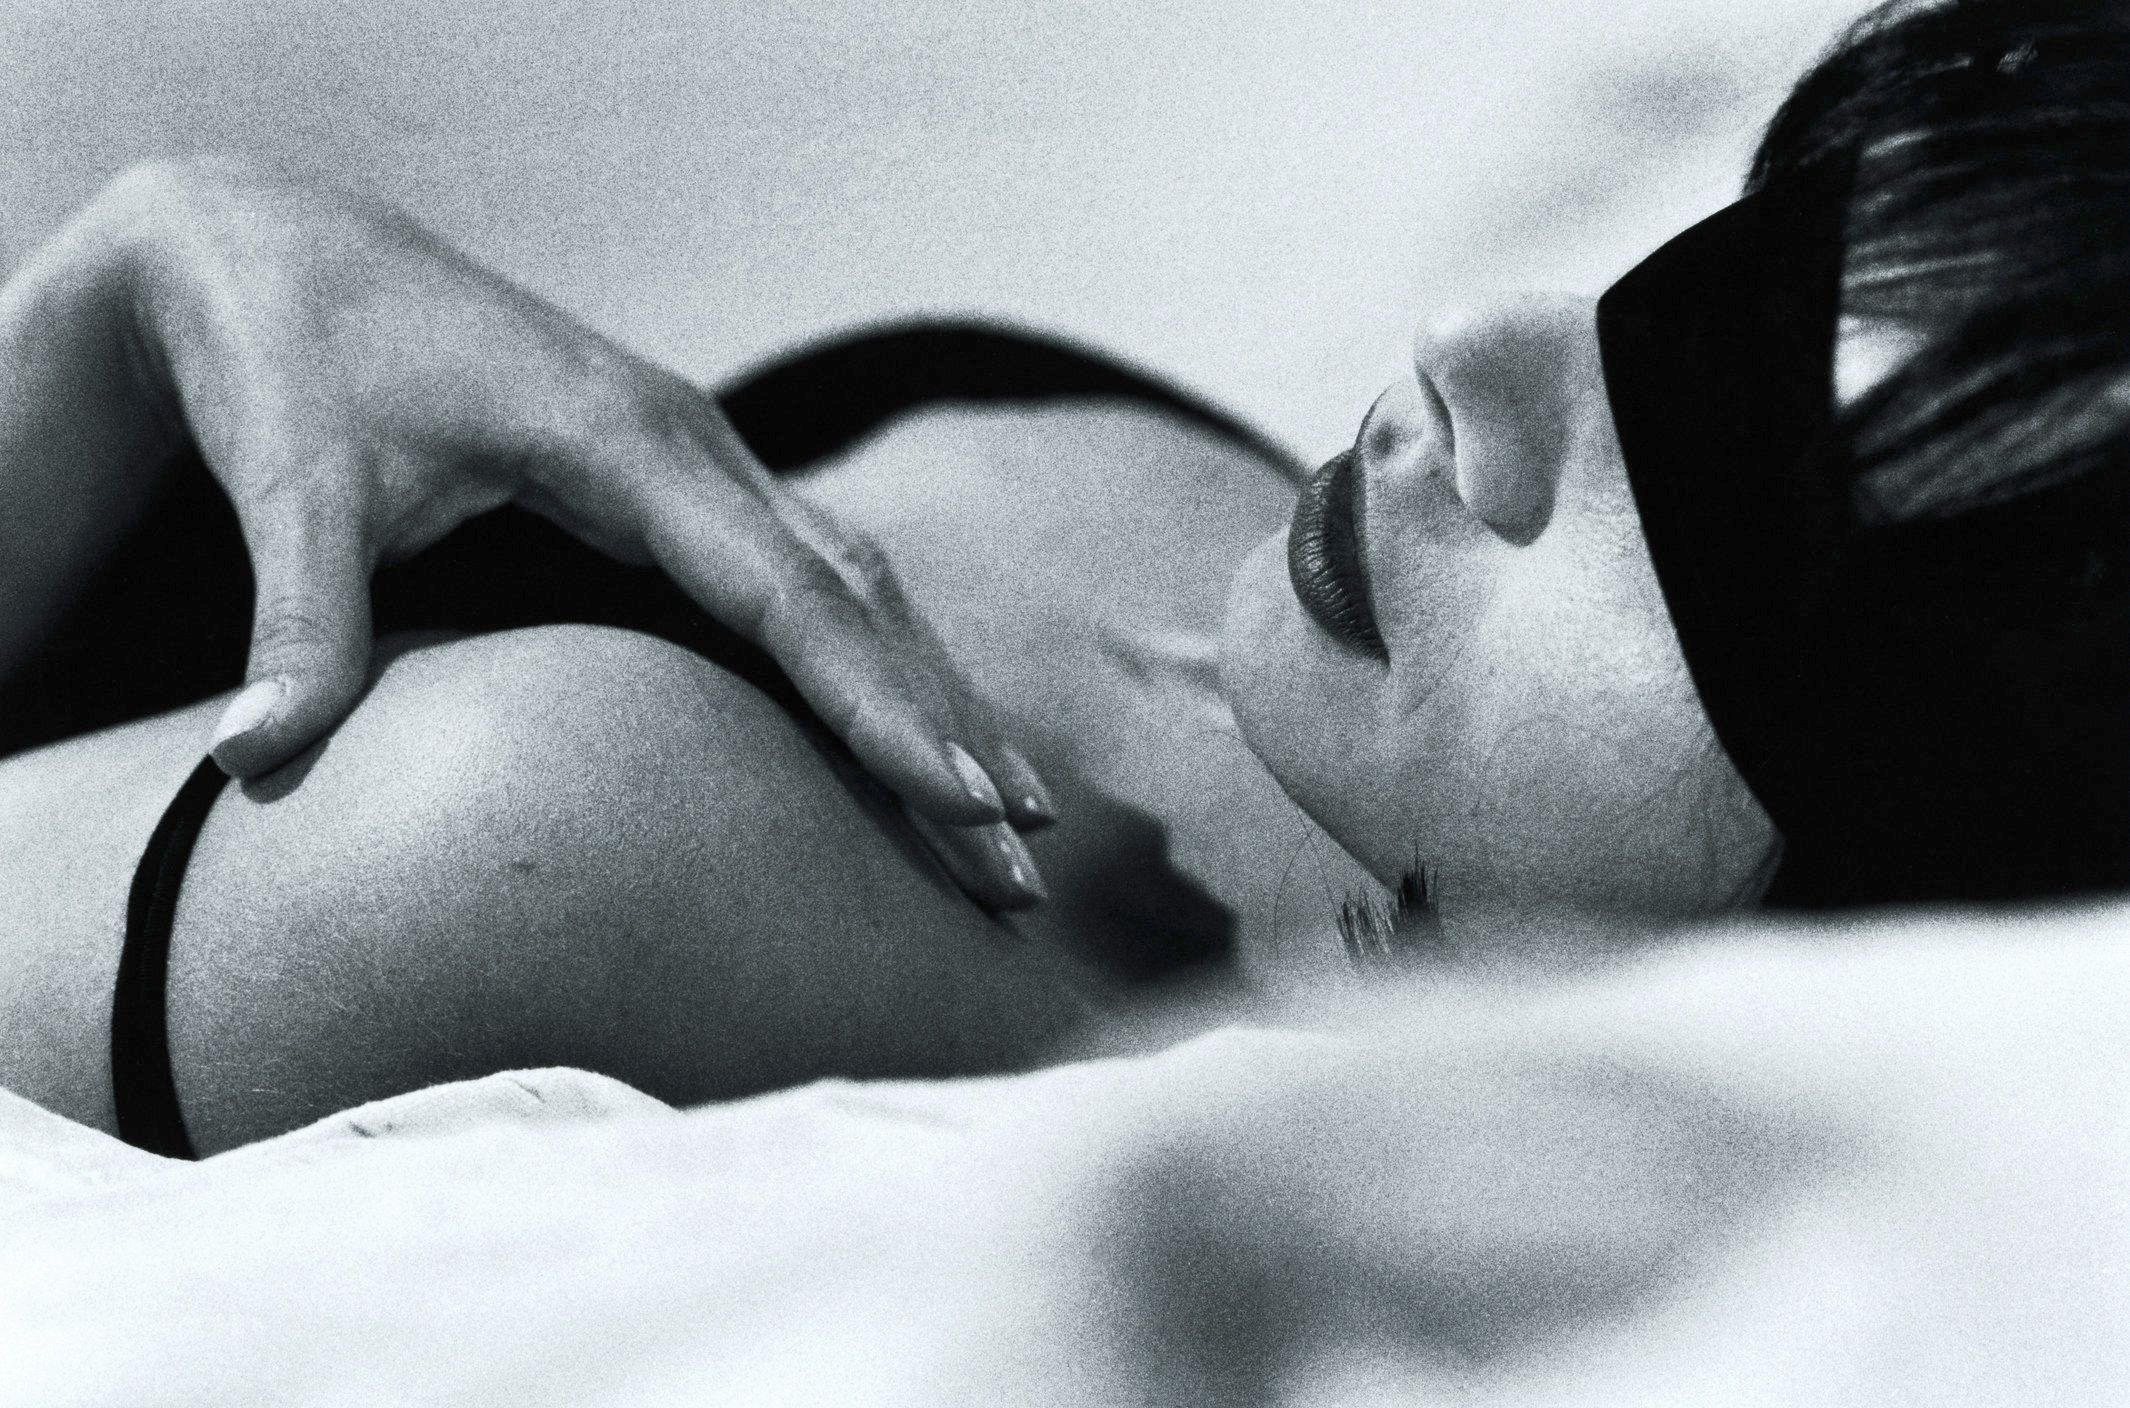 WOMAN LYING ON BED BLINDFOLDED (BLACK AND WHITE)